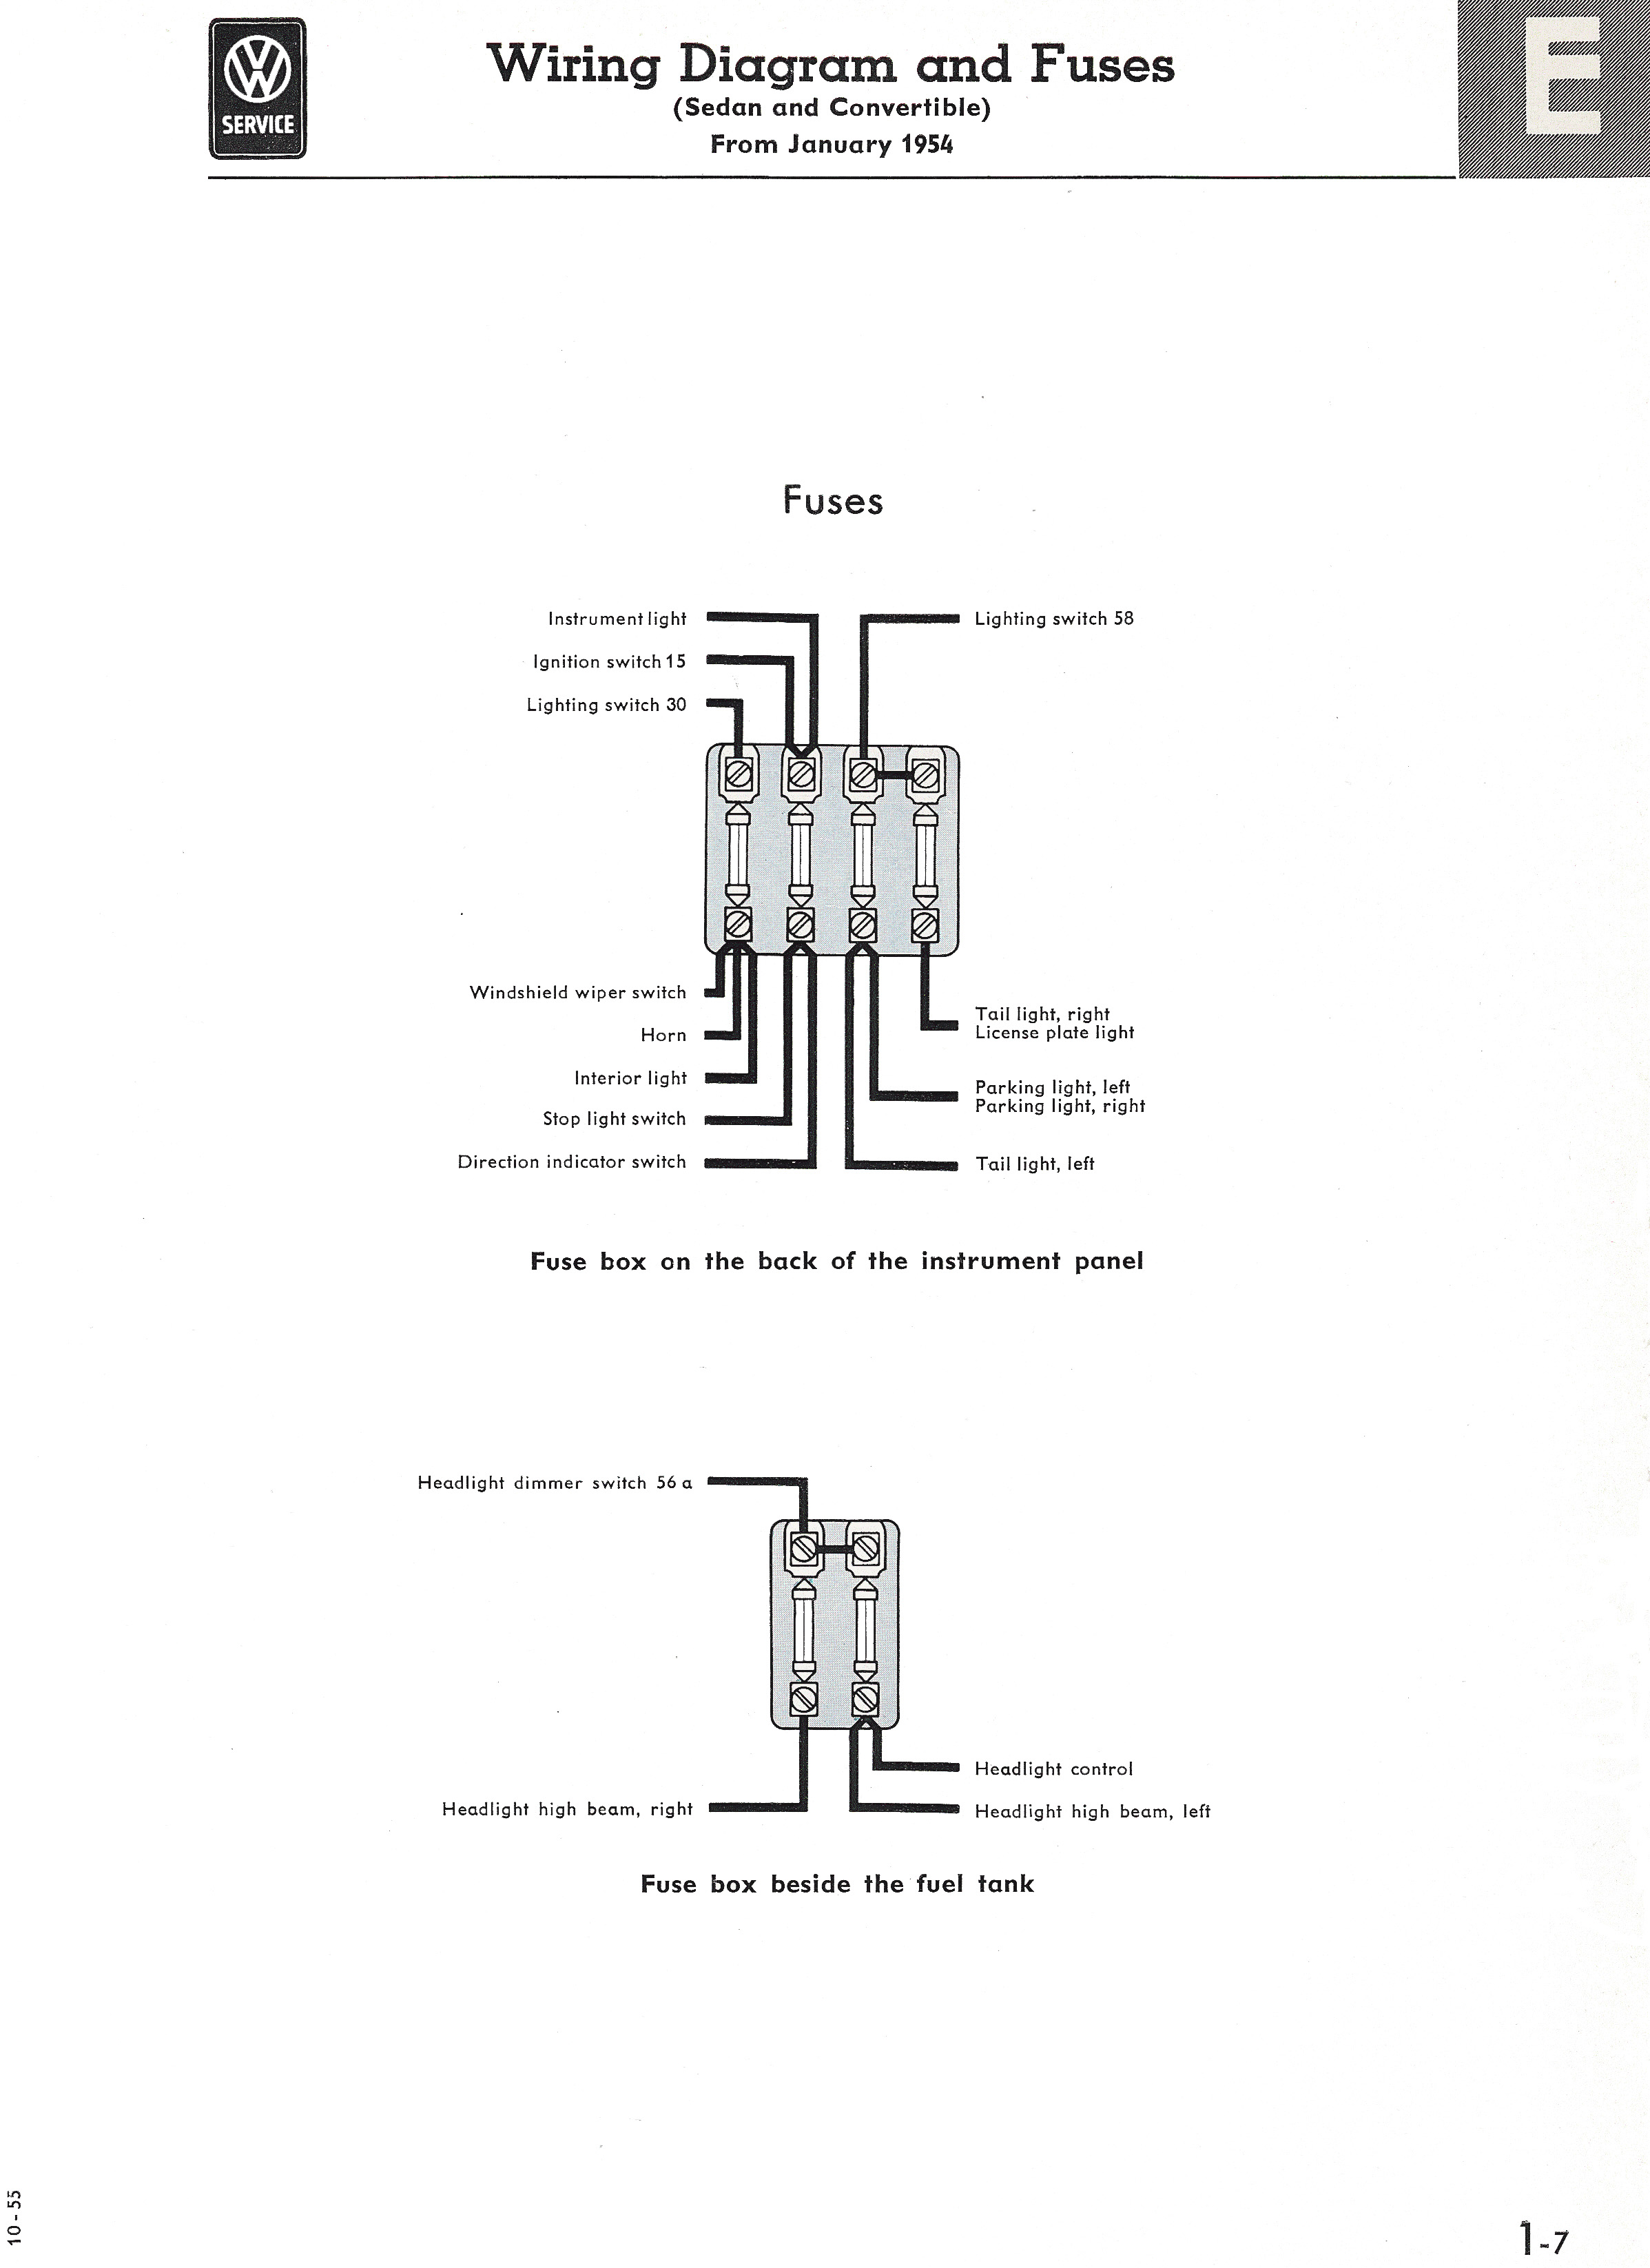 Type 1 Wiring Diagrams 1951 Ford Ignition Switch Diagram Printable